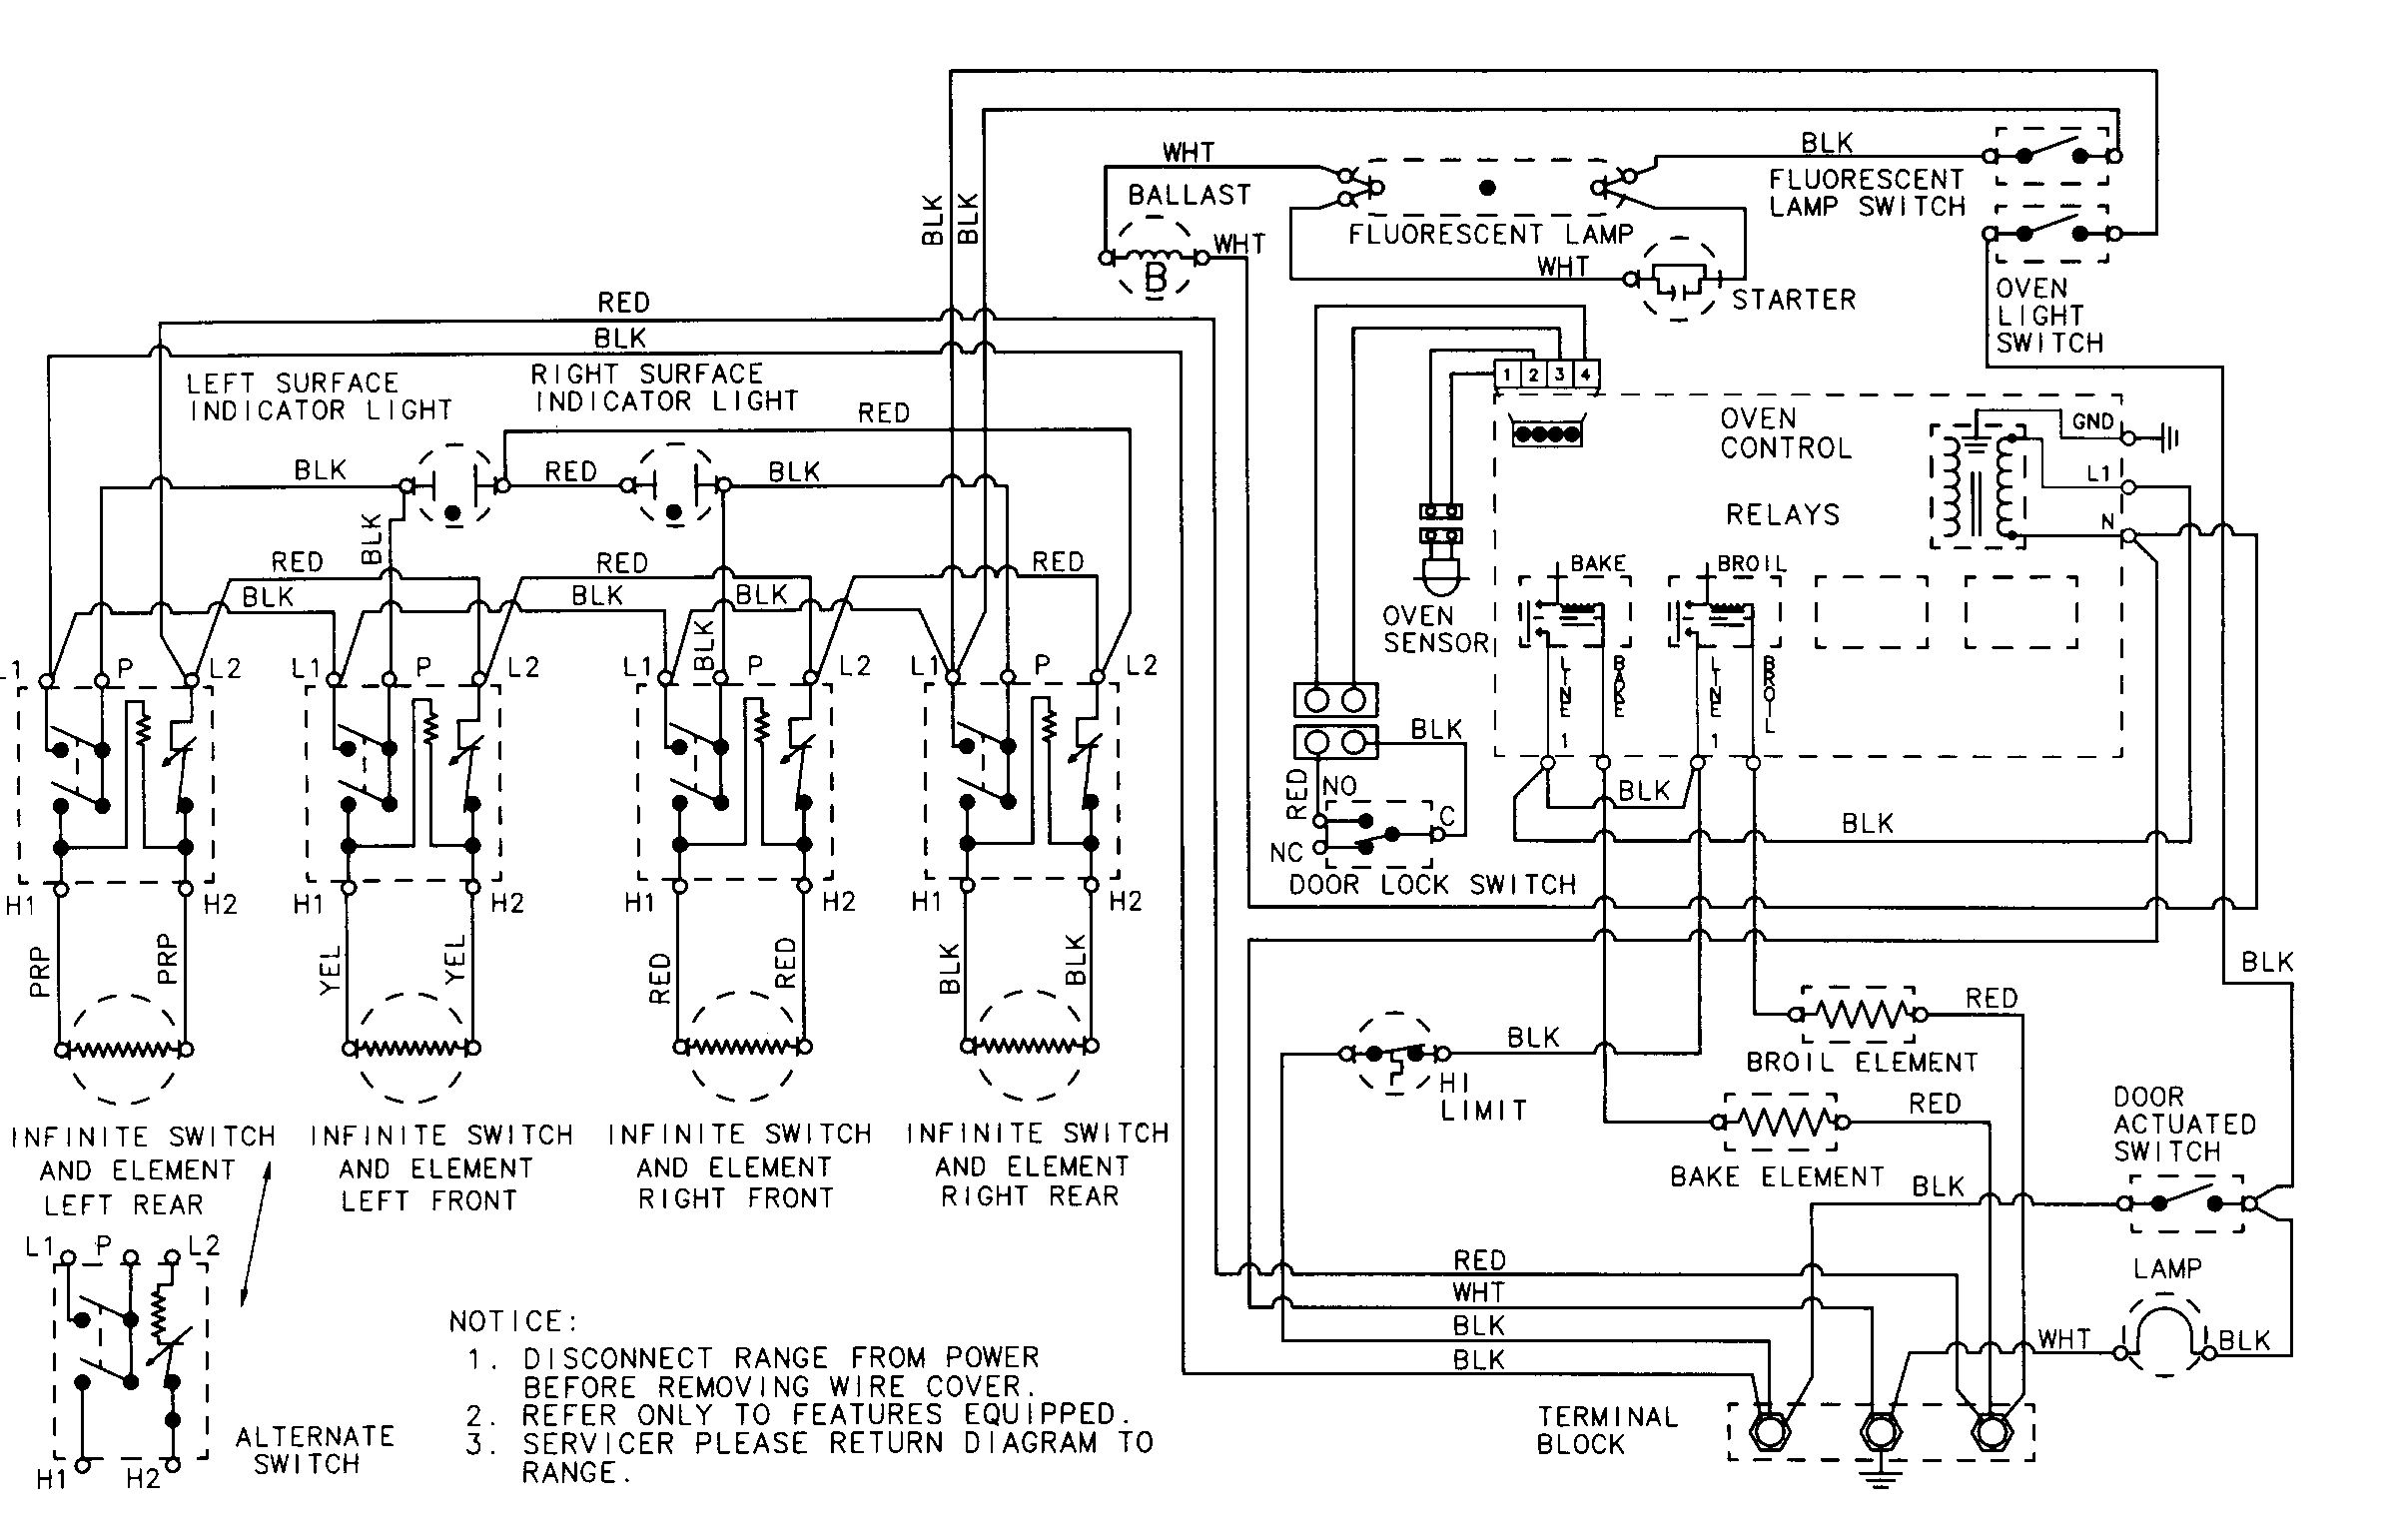 Stove Top Wiring Diagram | Wiring Diagram on